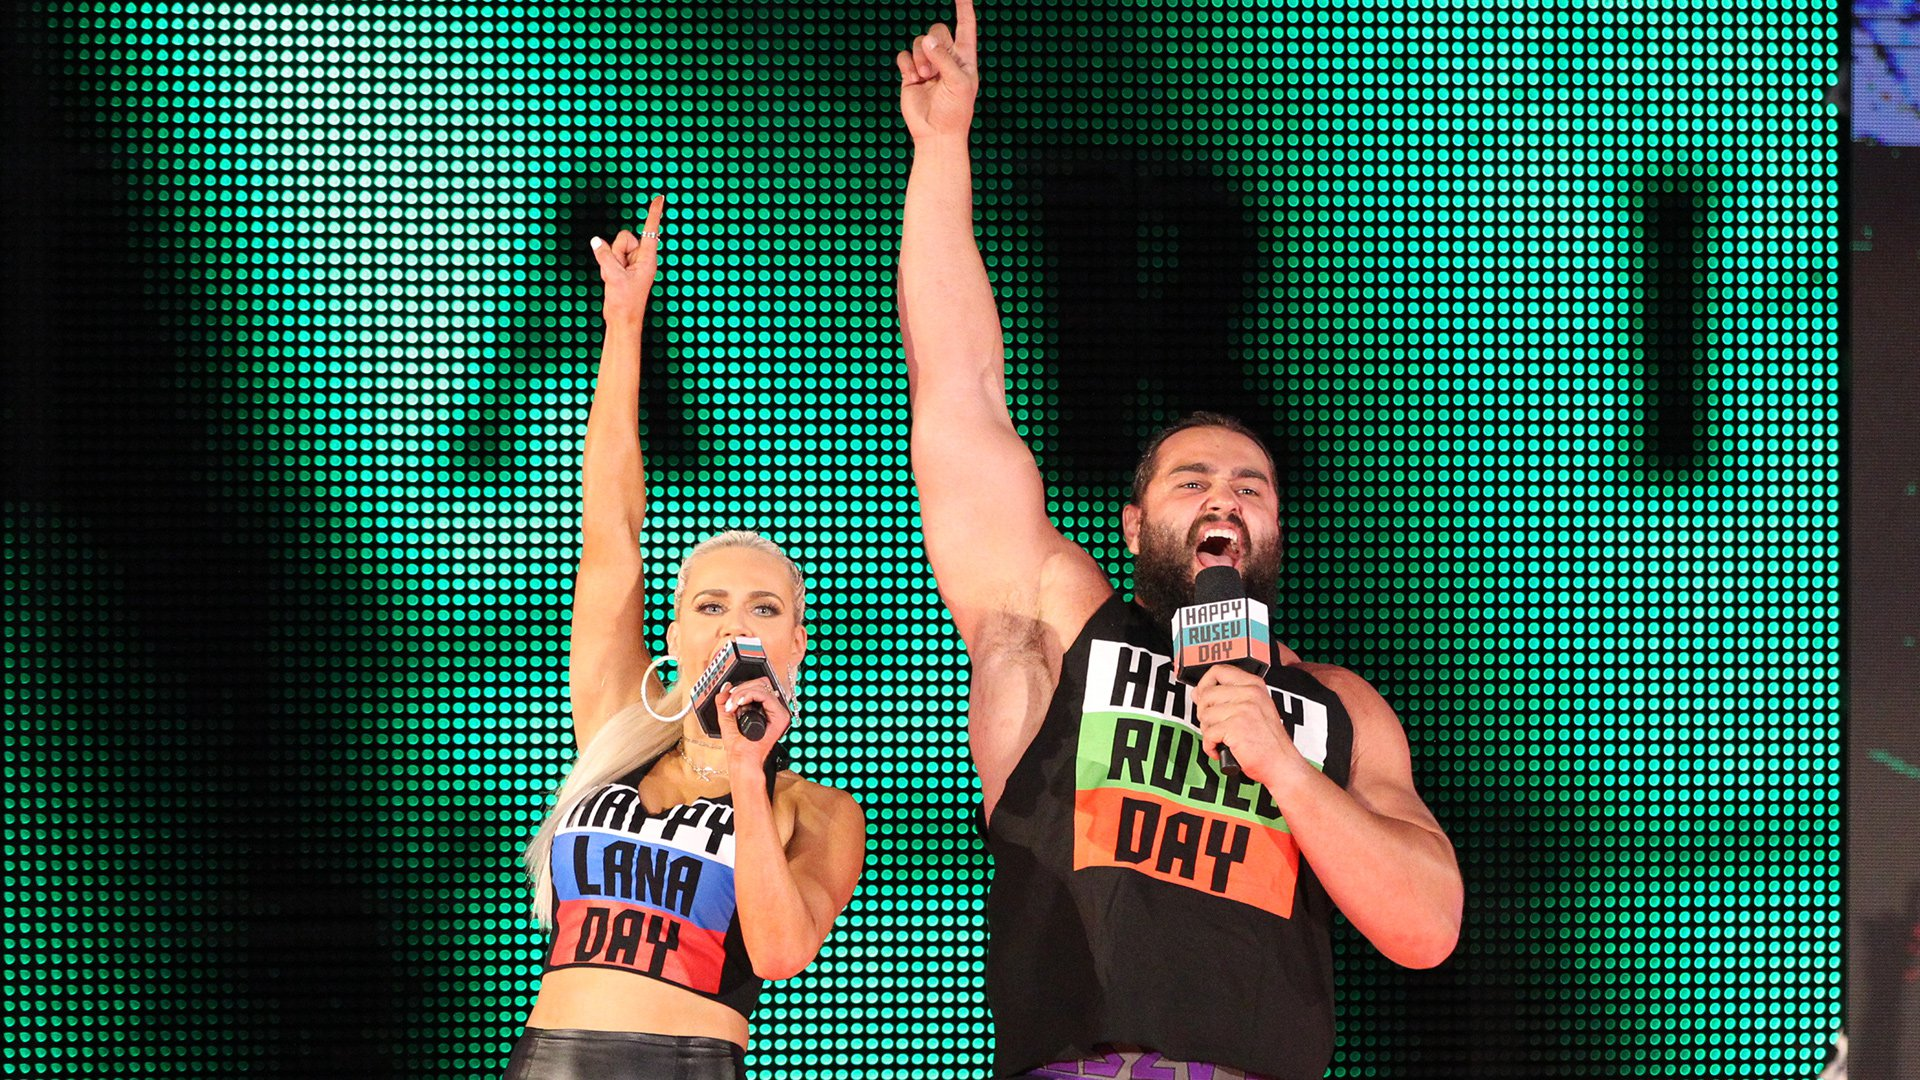 rusev lana promise victory at summerslam smackdown live aug 14